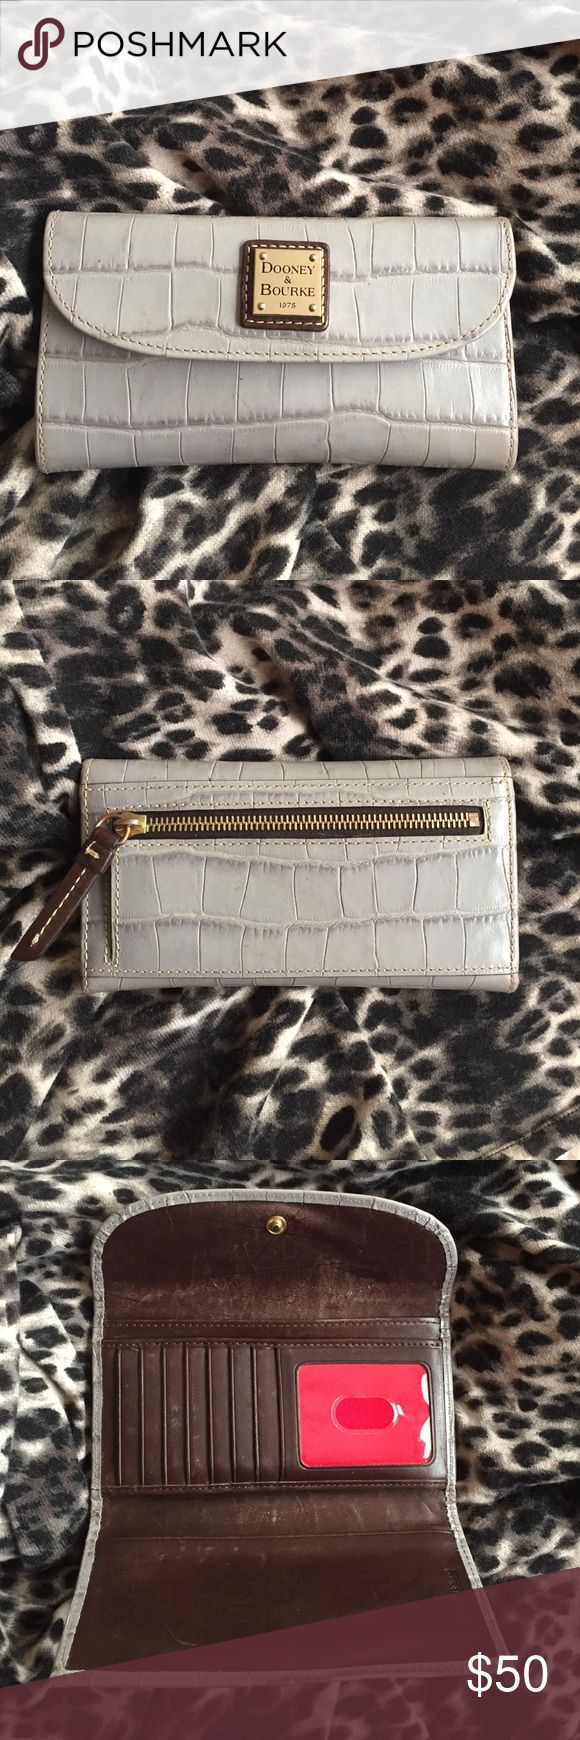 D&B Gray Croc Print Clutch Wallet Awesome Dooney & Bourke clutch wallet with tons of card, cash, and coin storage. Well loved but with plenty of time left in this timeless design! Calling this good used condition bc of very small marks shown in bottom pic, taken from about 2 in away. Dooney & Bourke Bags Wallets